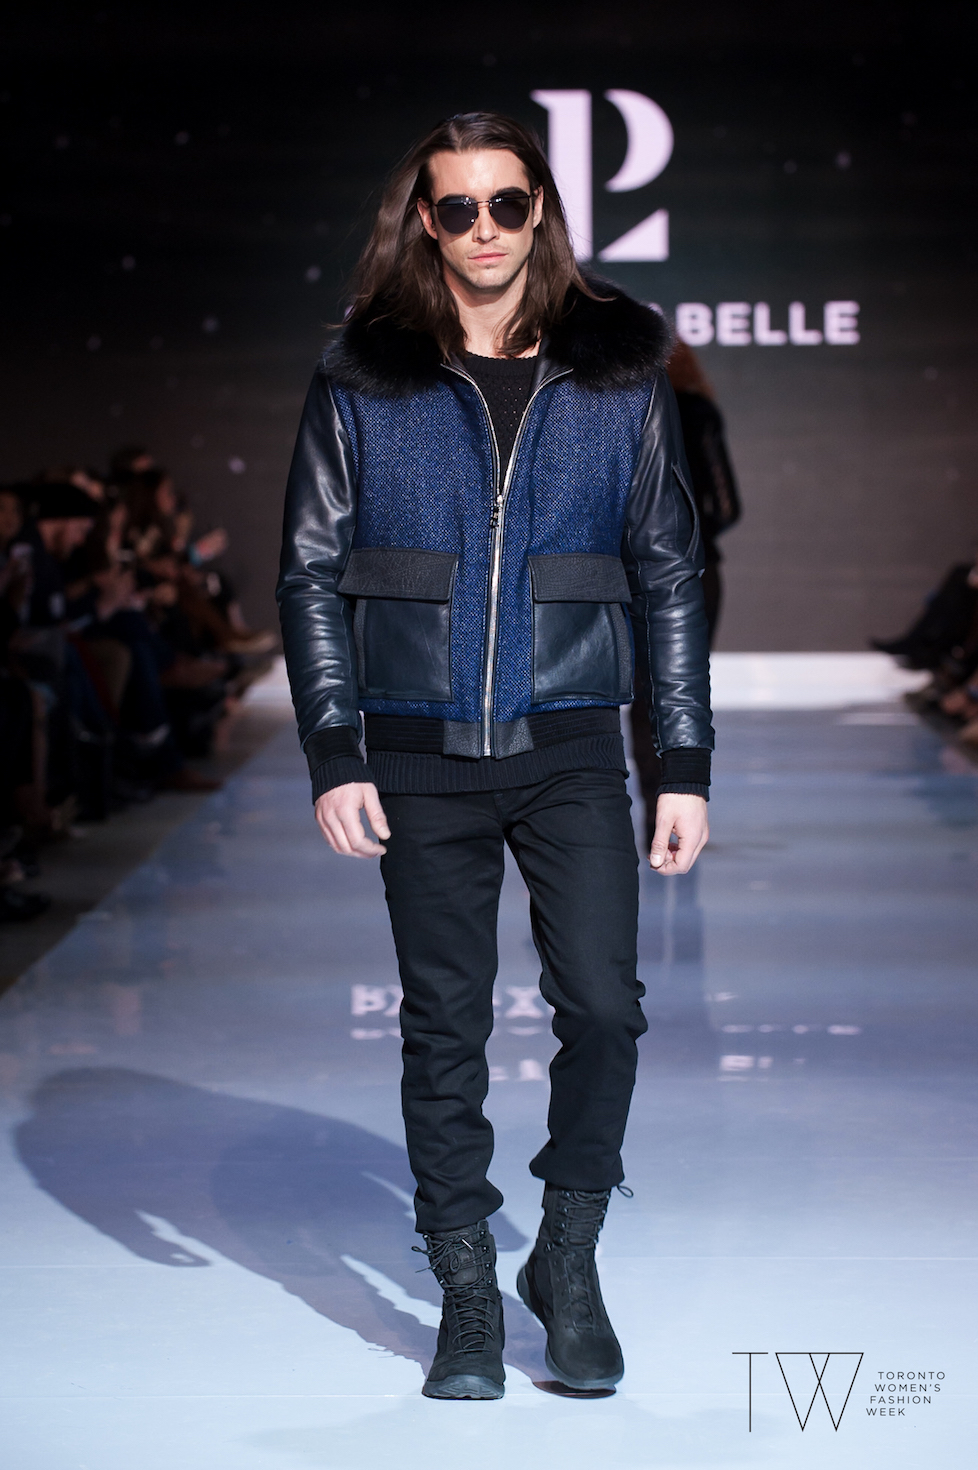 pascal_labelle-twfw-toronto-womens-fashion-week-photo-credit-che-rosales-mens-look-1.jpg